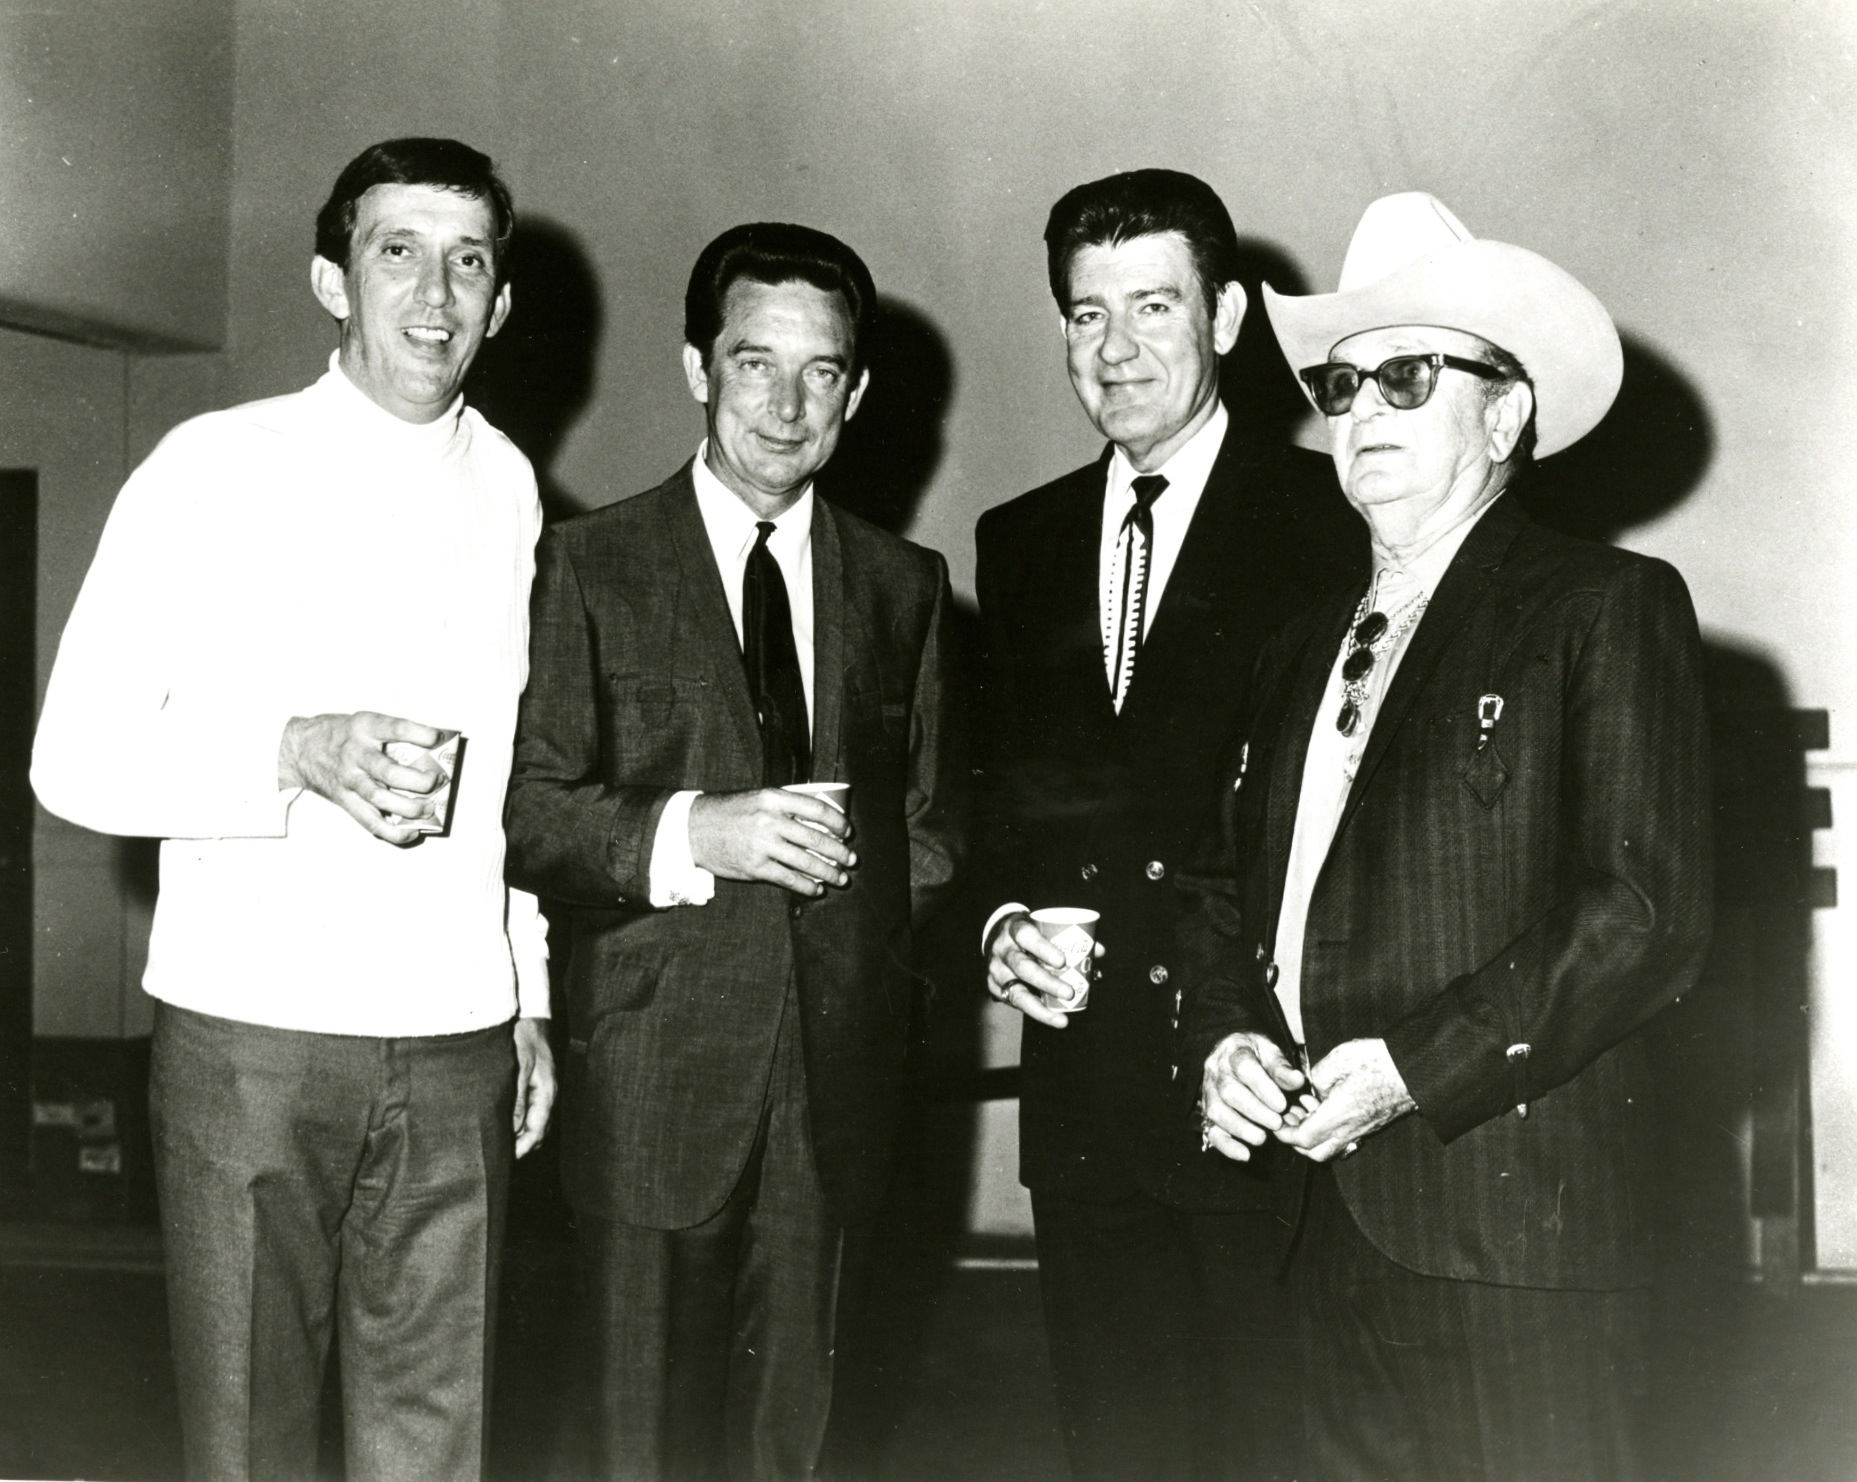 P3910_Standing from left to right: KBBQ disc jockey Hugh Jarrett, musicians Ray Price and Tex Williams, and tailor Nudie Cohn. The four are backstage at the KBBQ First Anniversary Show_Southern Folklife Collection Radio and Television Files (30015)